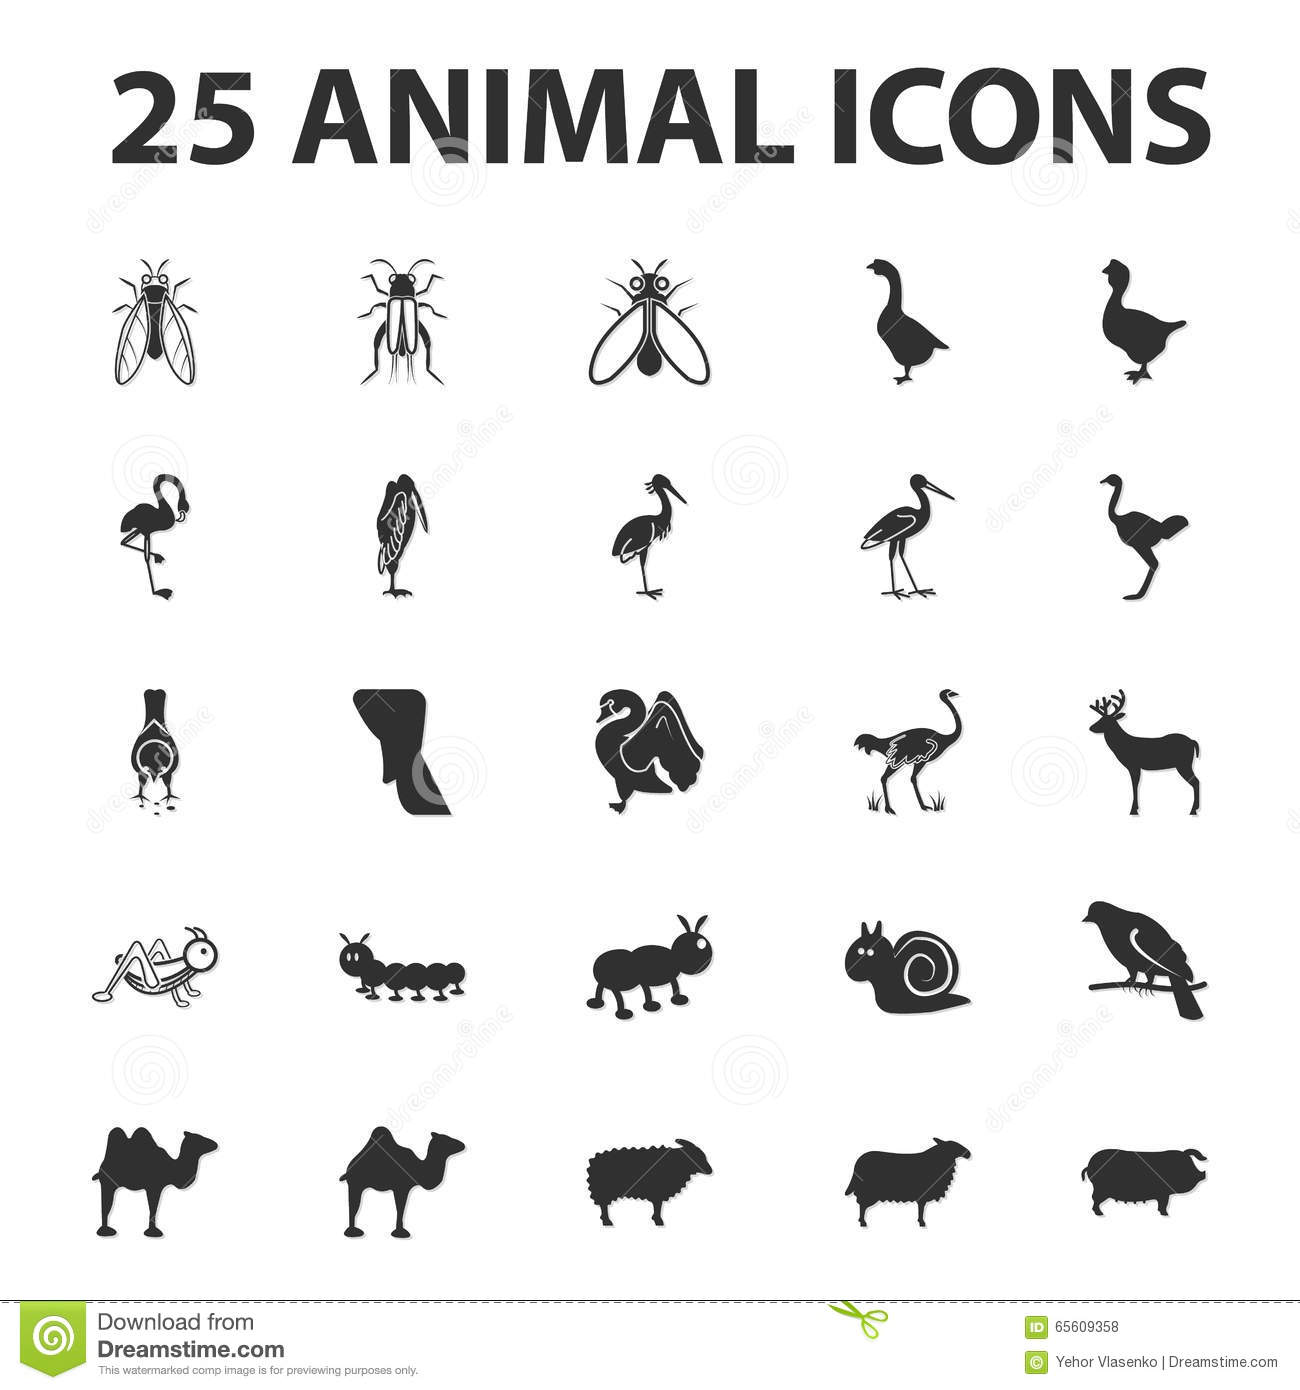 Animal And Beast 25 Black Simple Icons Set For Web Stock Vector